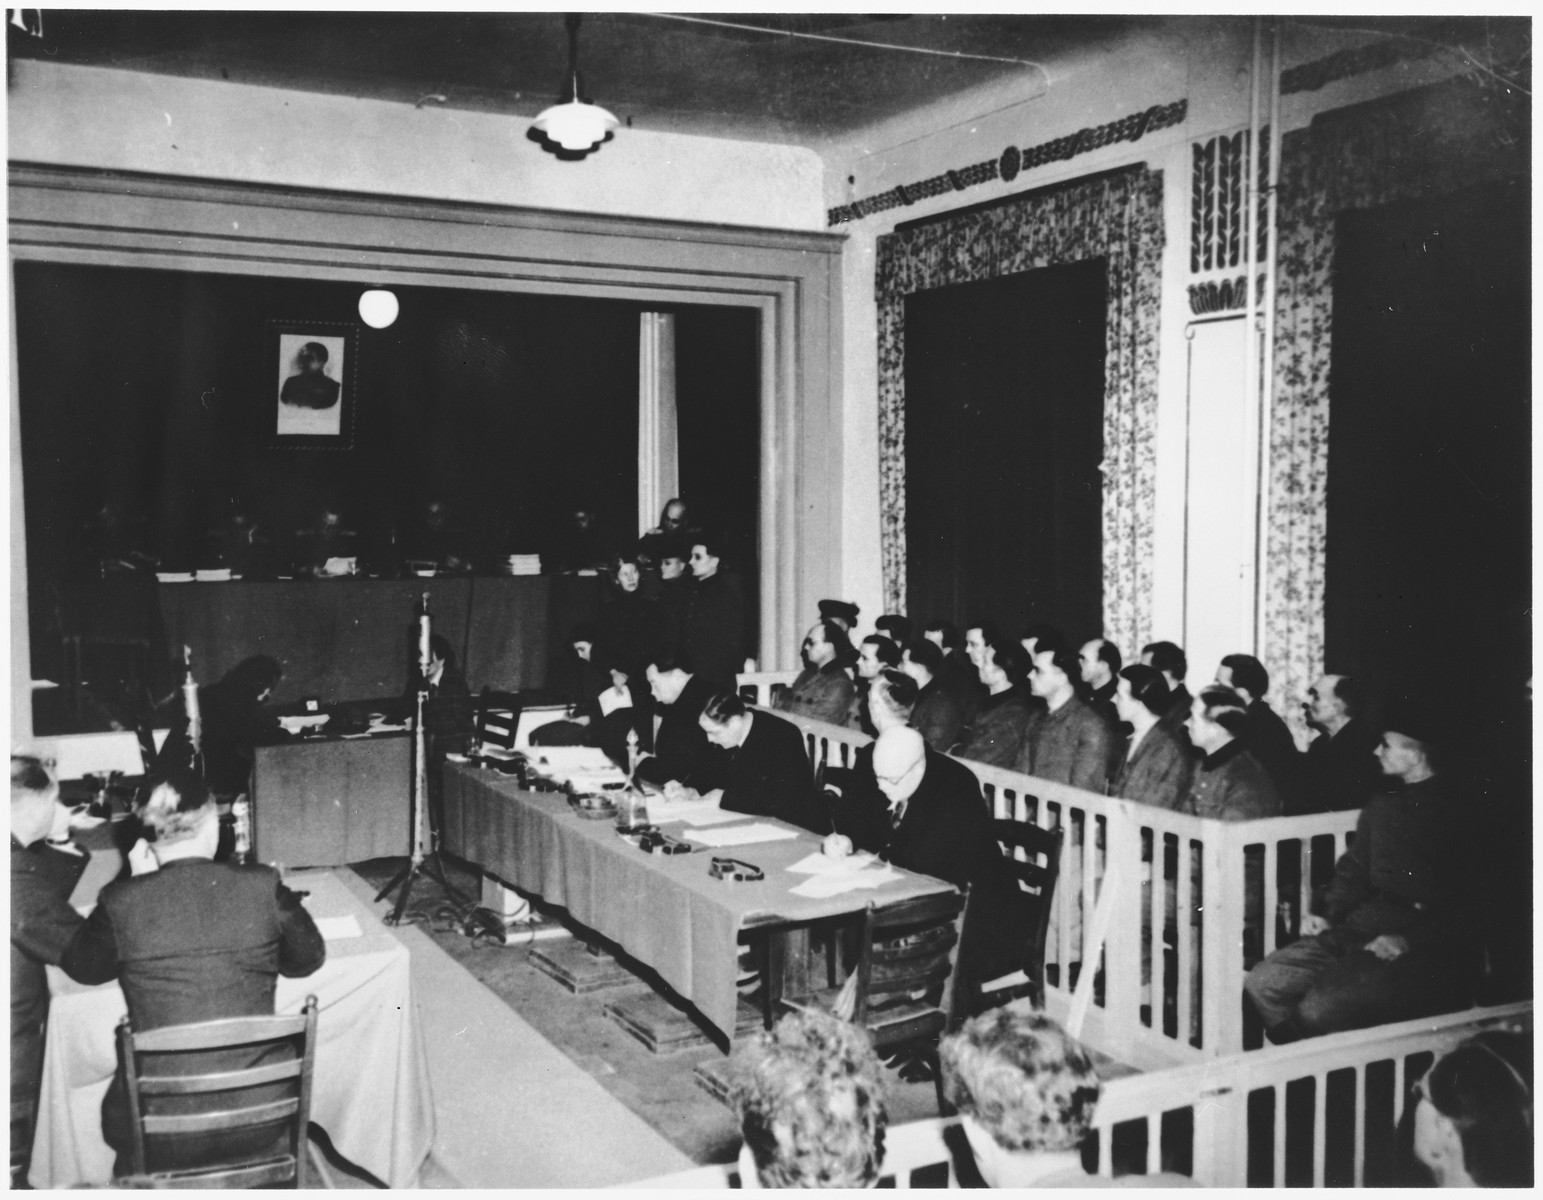 The defendants (right), their lawyers (center), and the Soviet Military Tribunal (back left) at the Sachsenhausen concentration camp war crimes trial in Berlin.